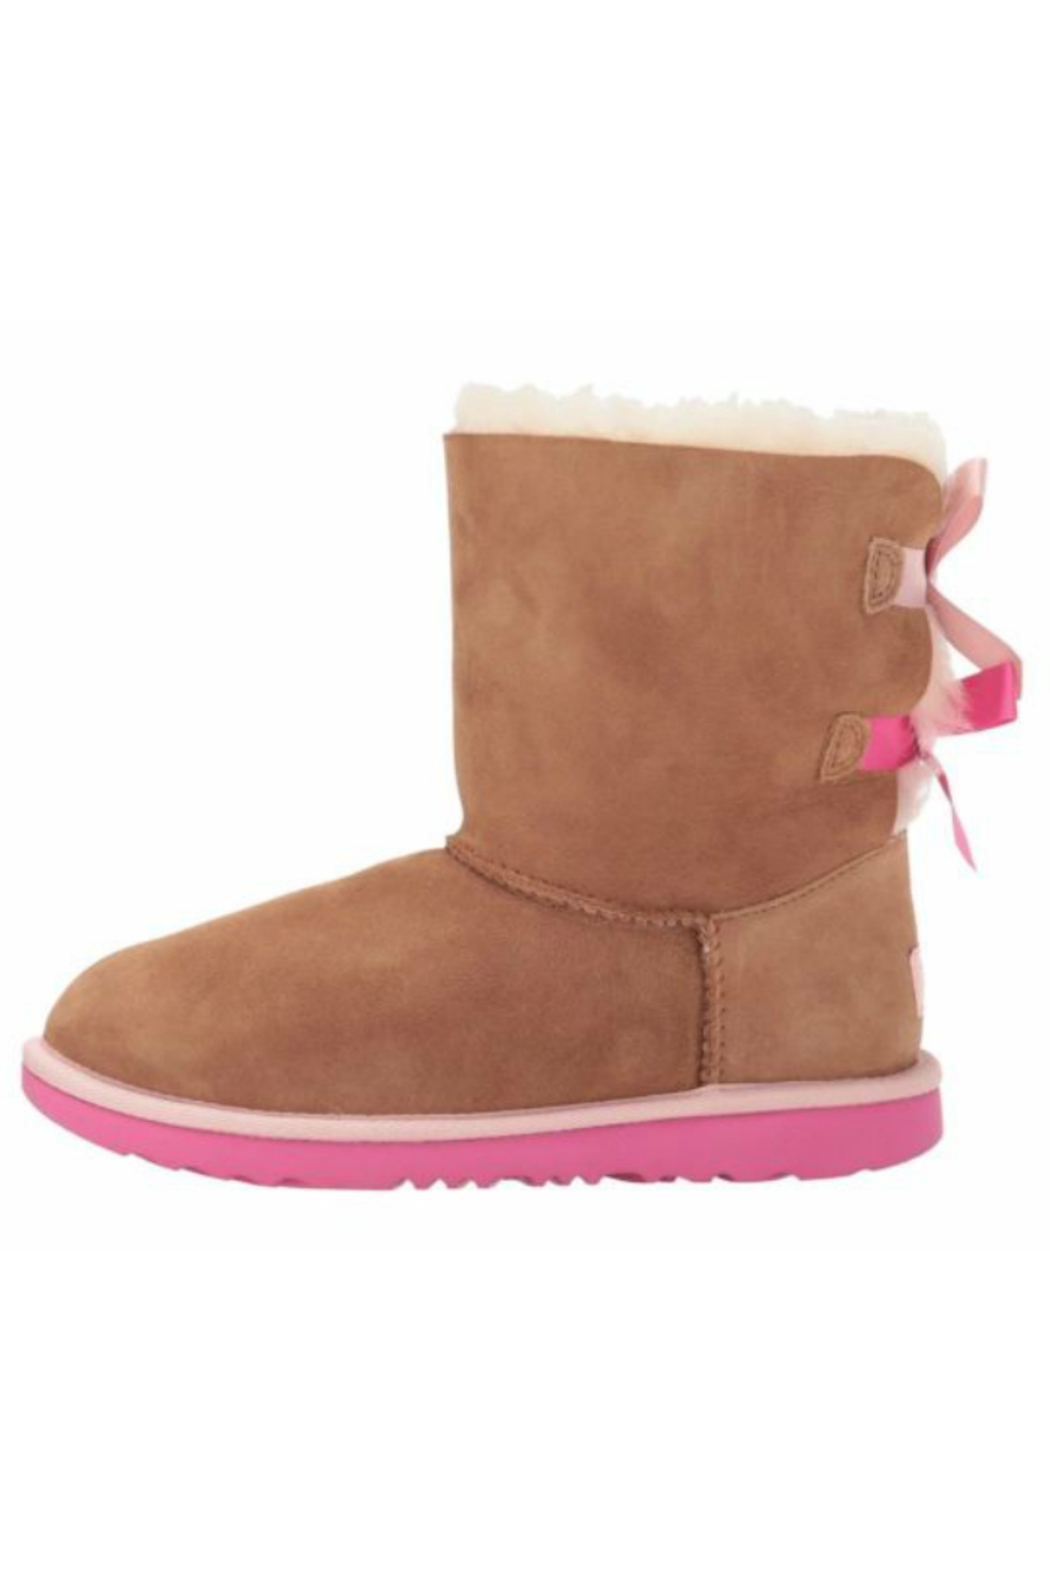 Ugg TODDLER BAILEY BOW - Side Cropped Image